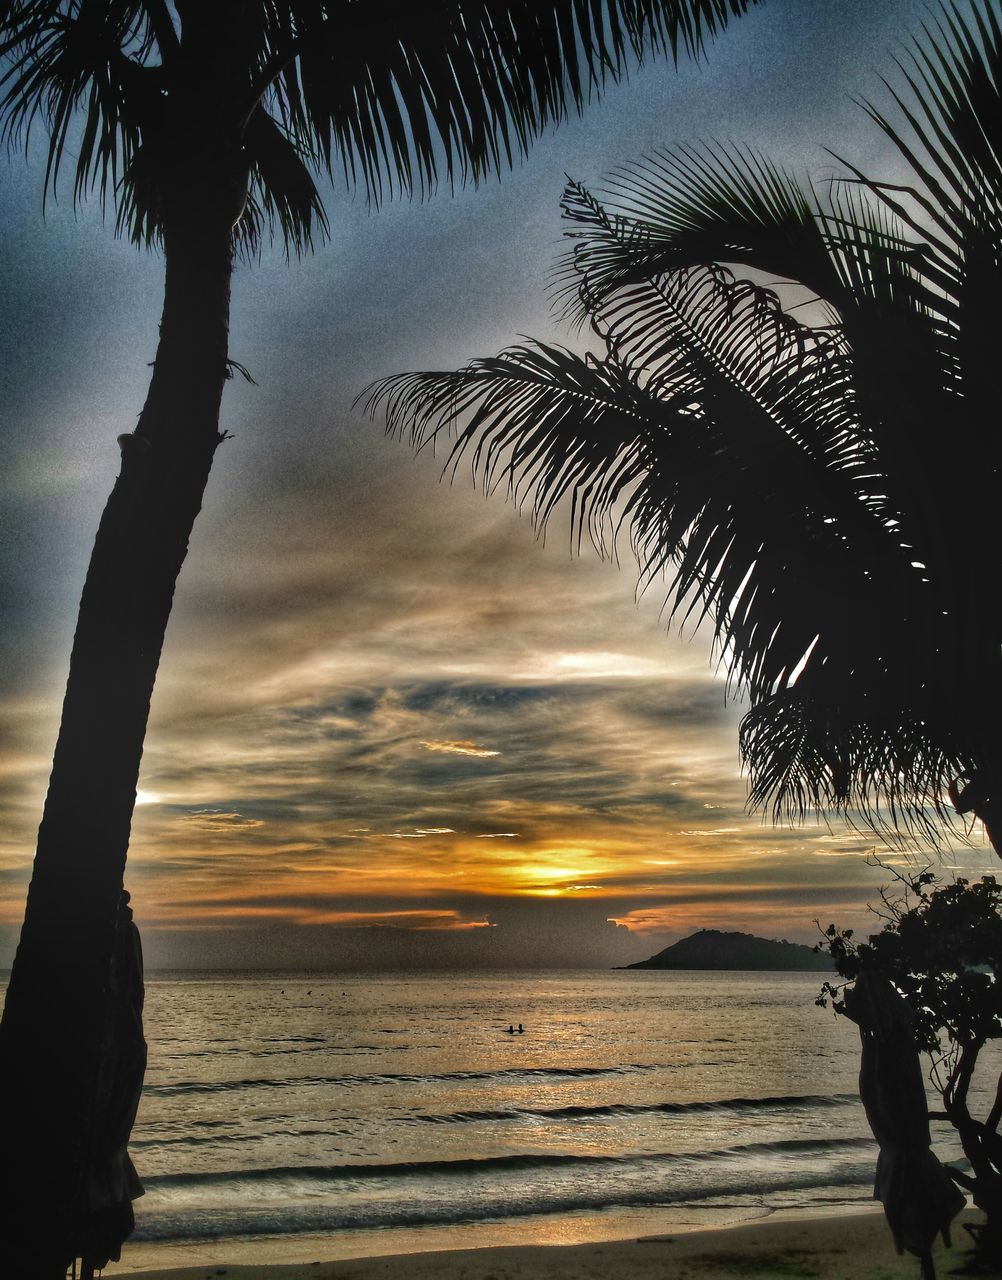 beach, sea, palm tree, tree, sunset, scenics, beauty in nature, nature, water, tranquil scene, silhouette, horizon over water, sky, tranquility, outdoors, sand, no people, wave, day